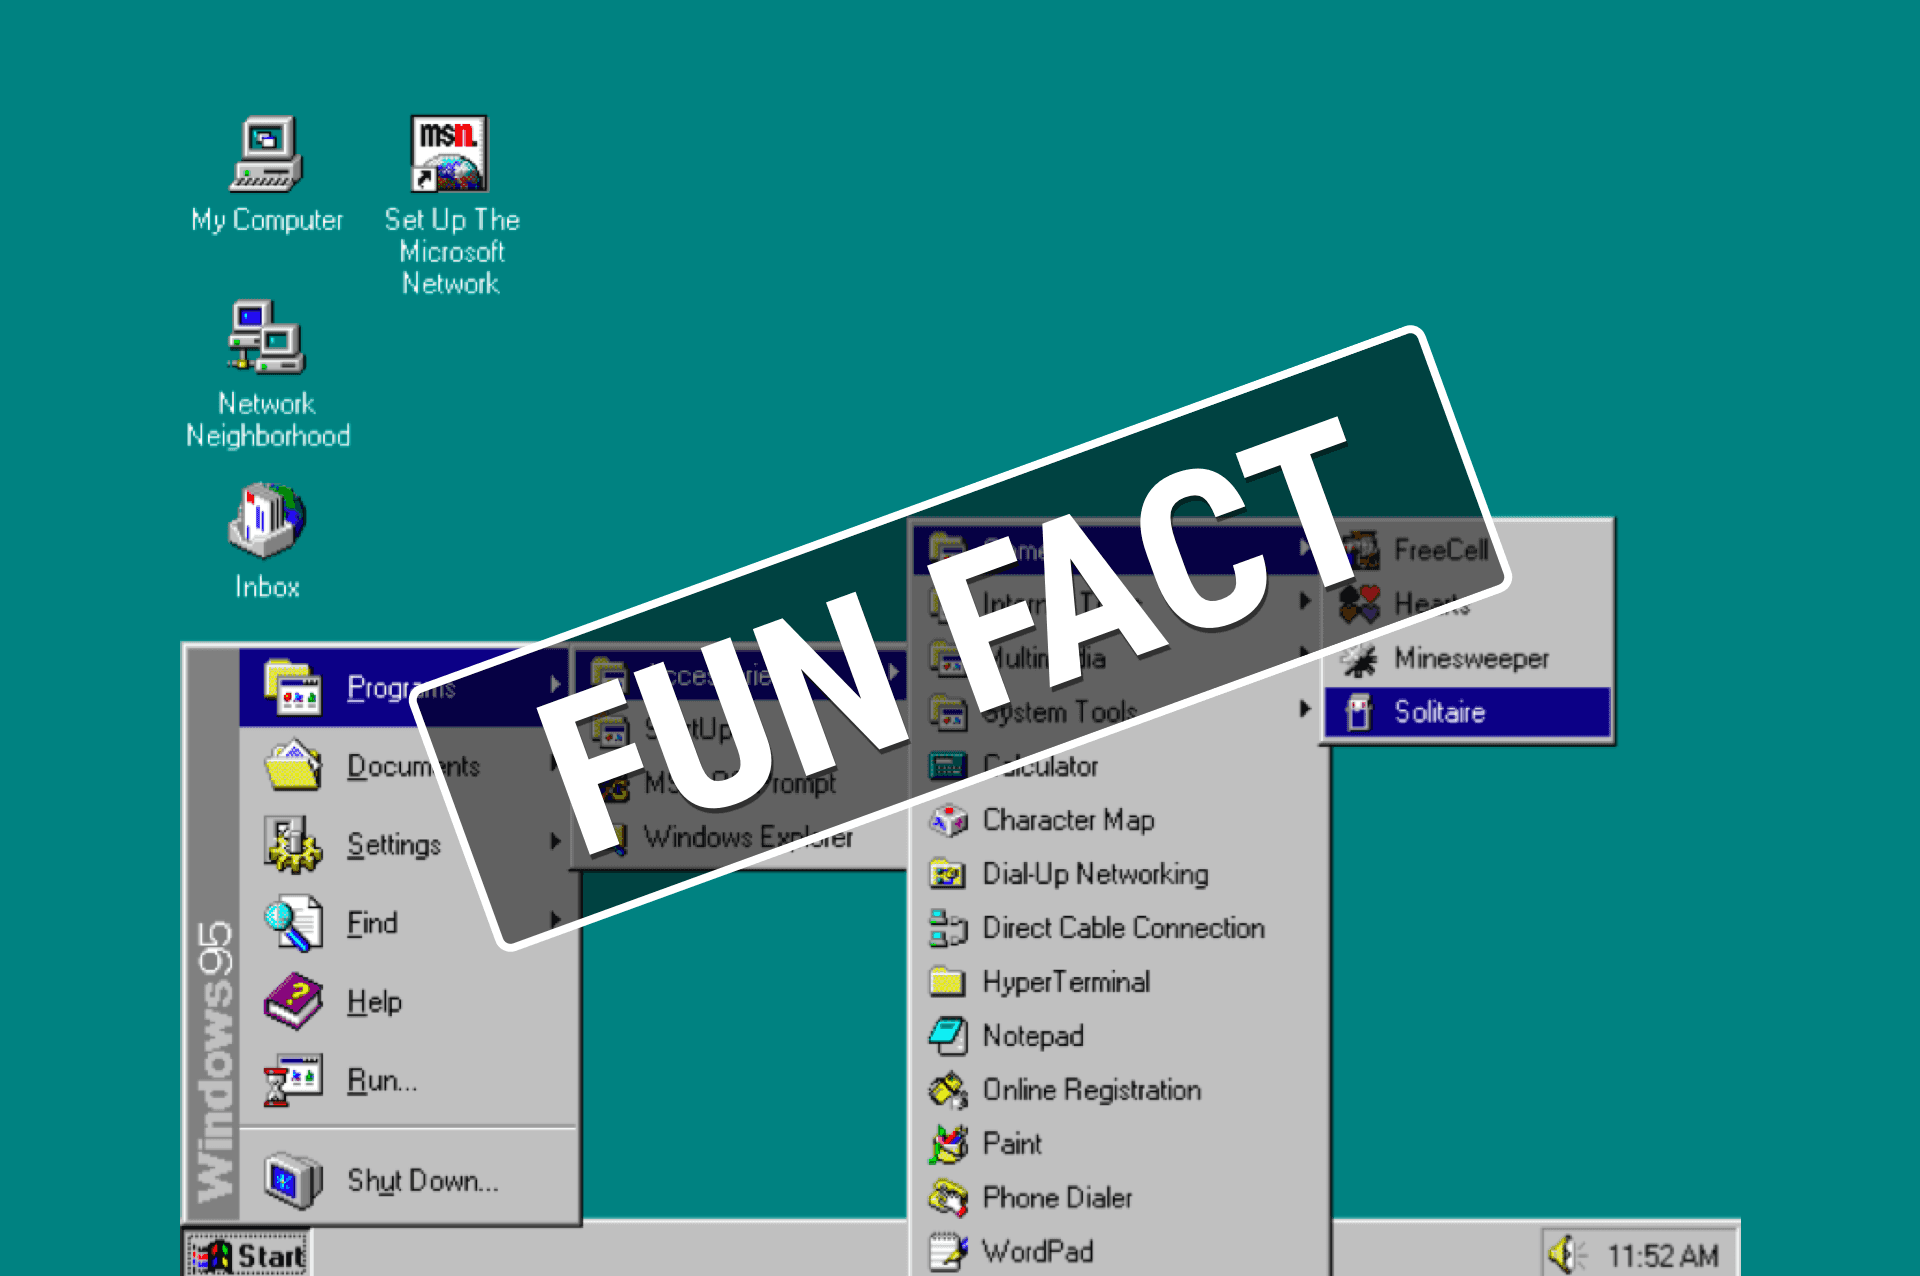 Do you know the True Purpose of Microsoft's Solitaire game?